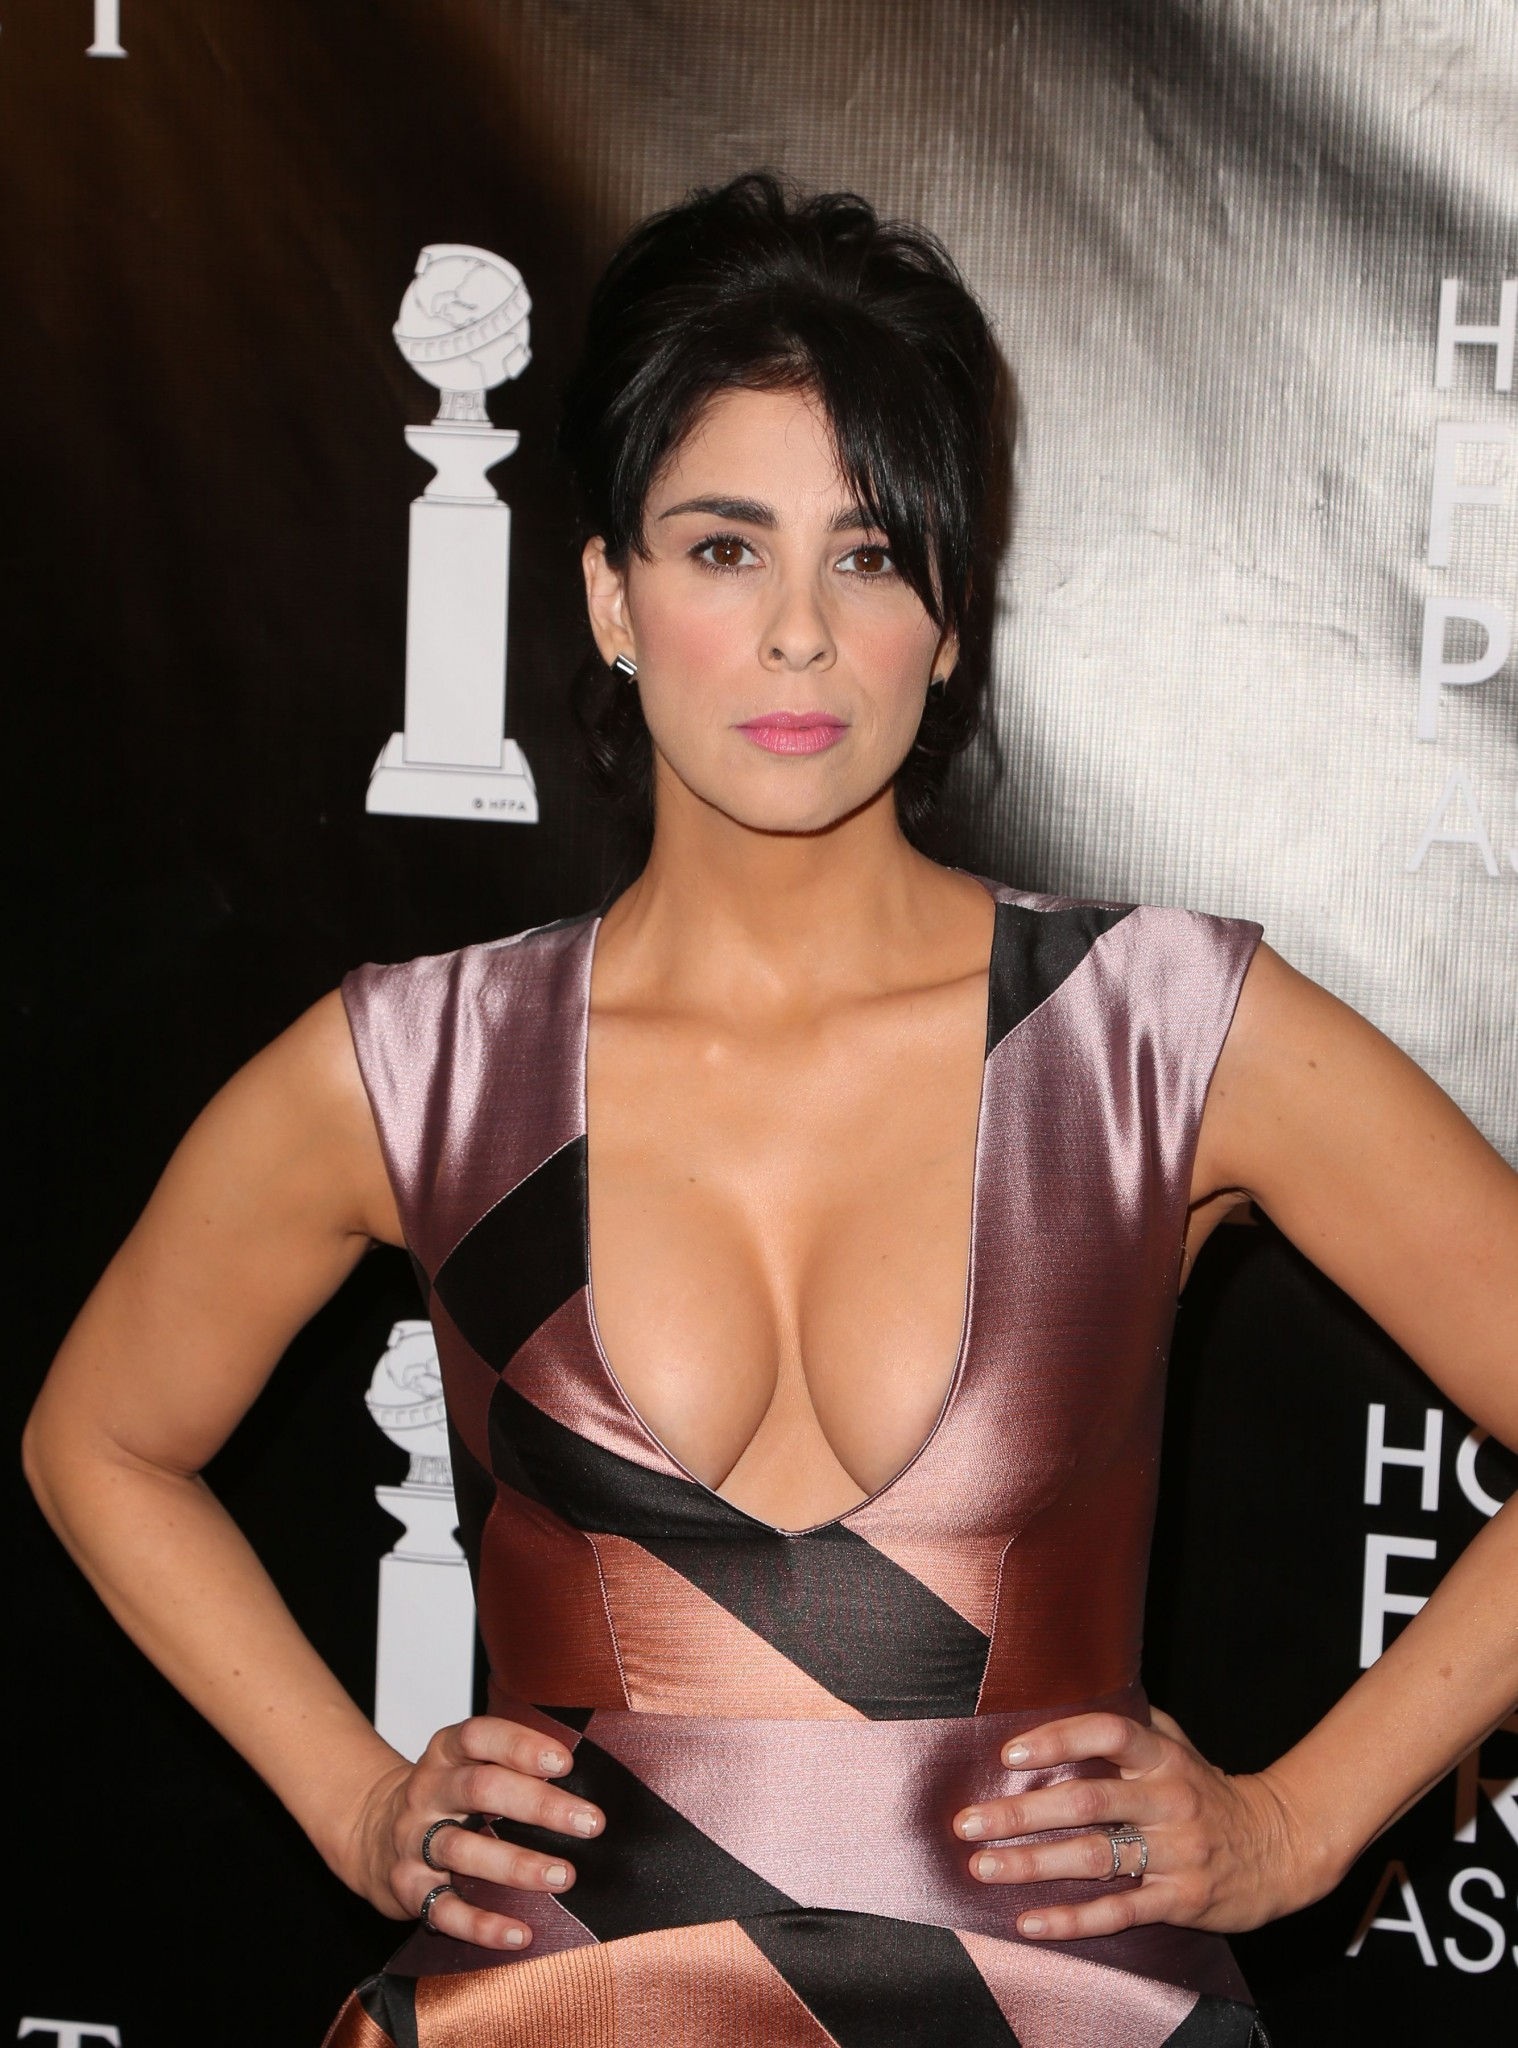 sarah-silverman-big-cleavage-in-nyc-04